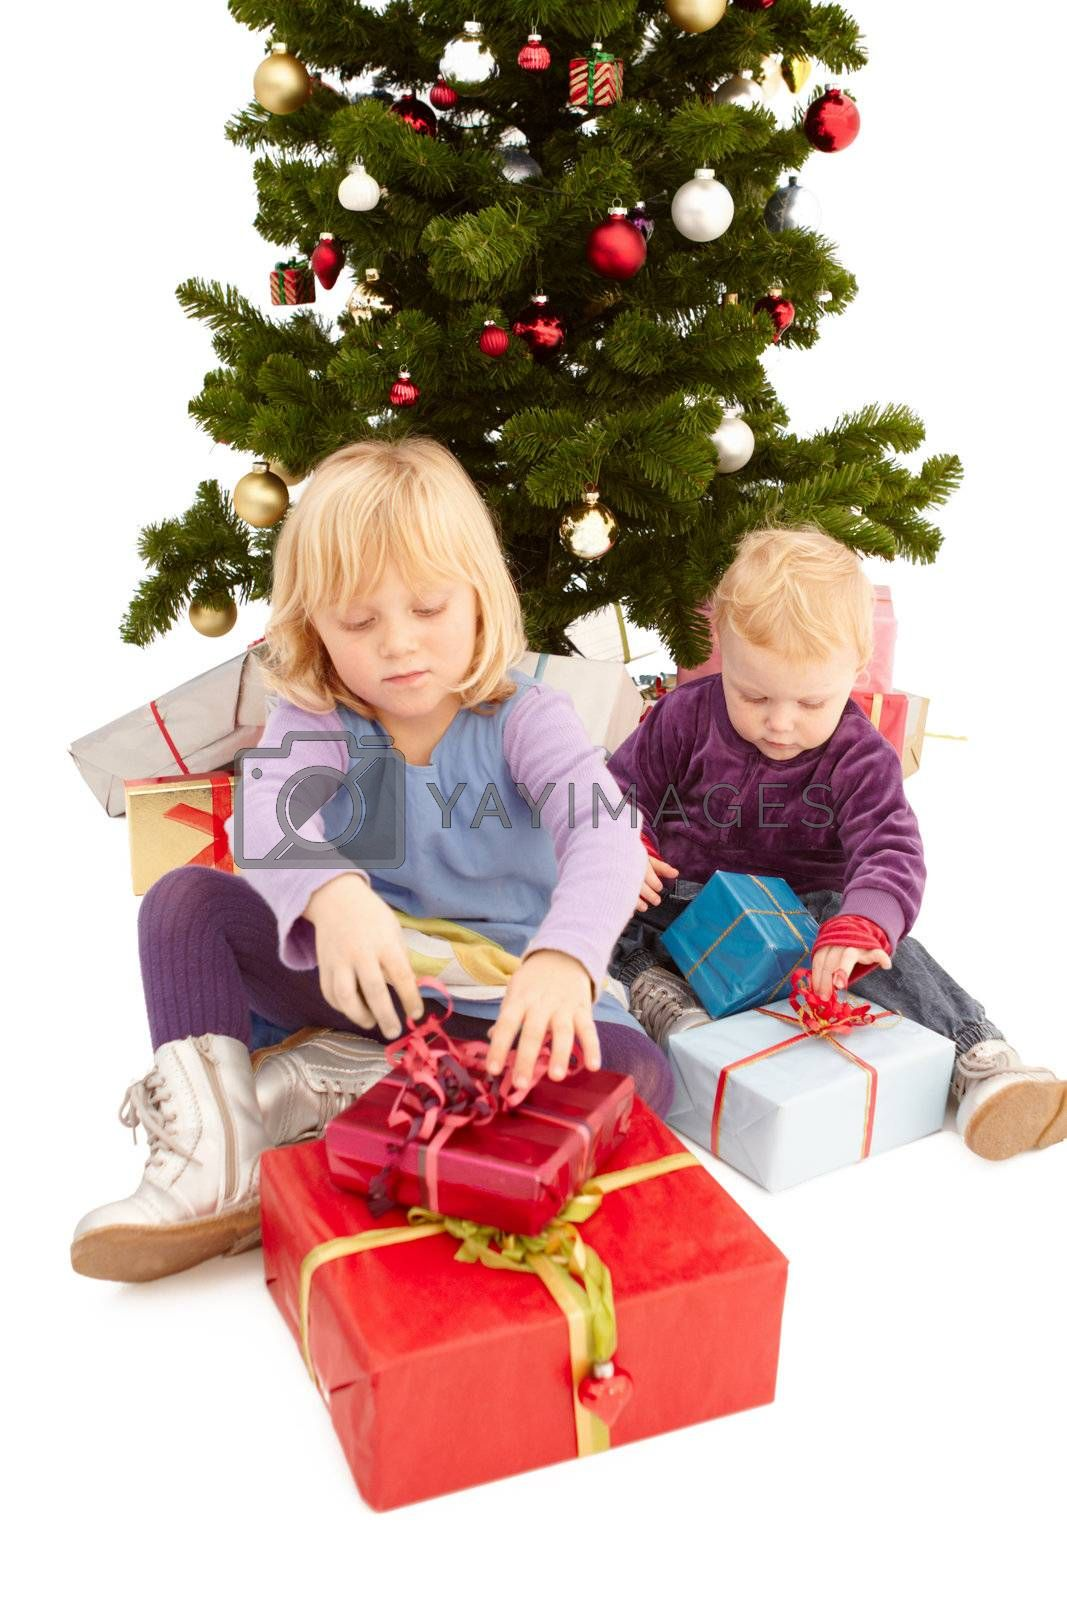 Royalty free image of Christmas - Cute young girls opening their presents by FreedomImage